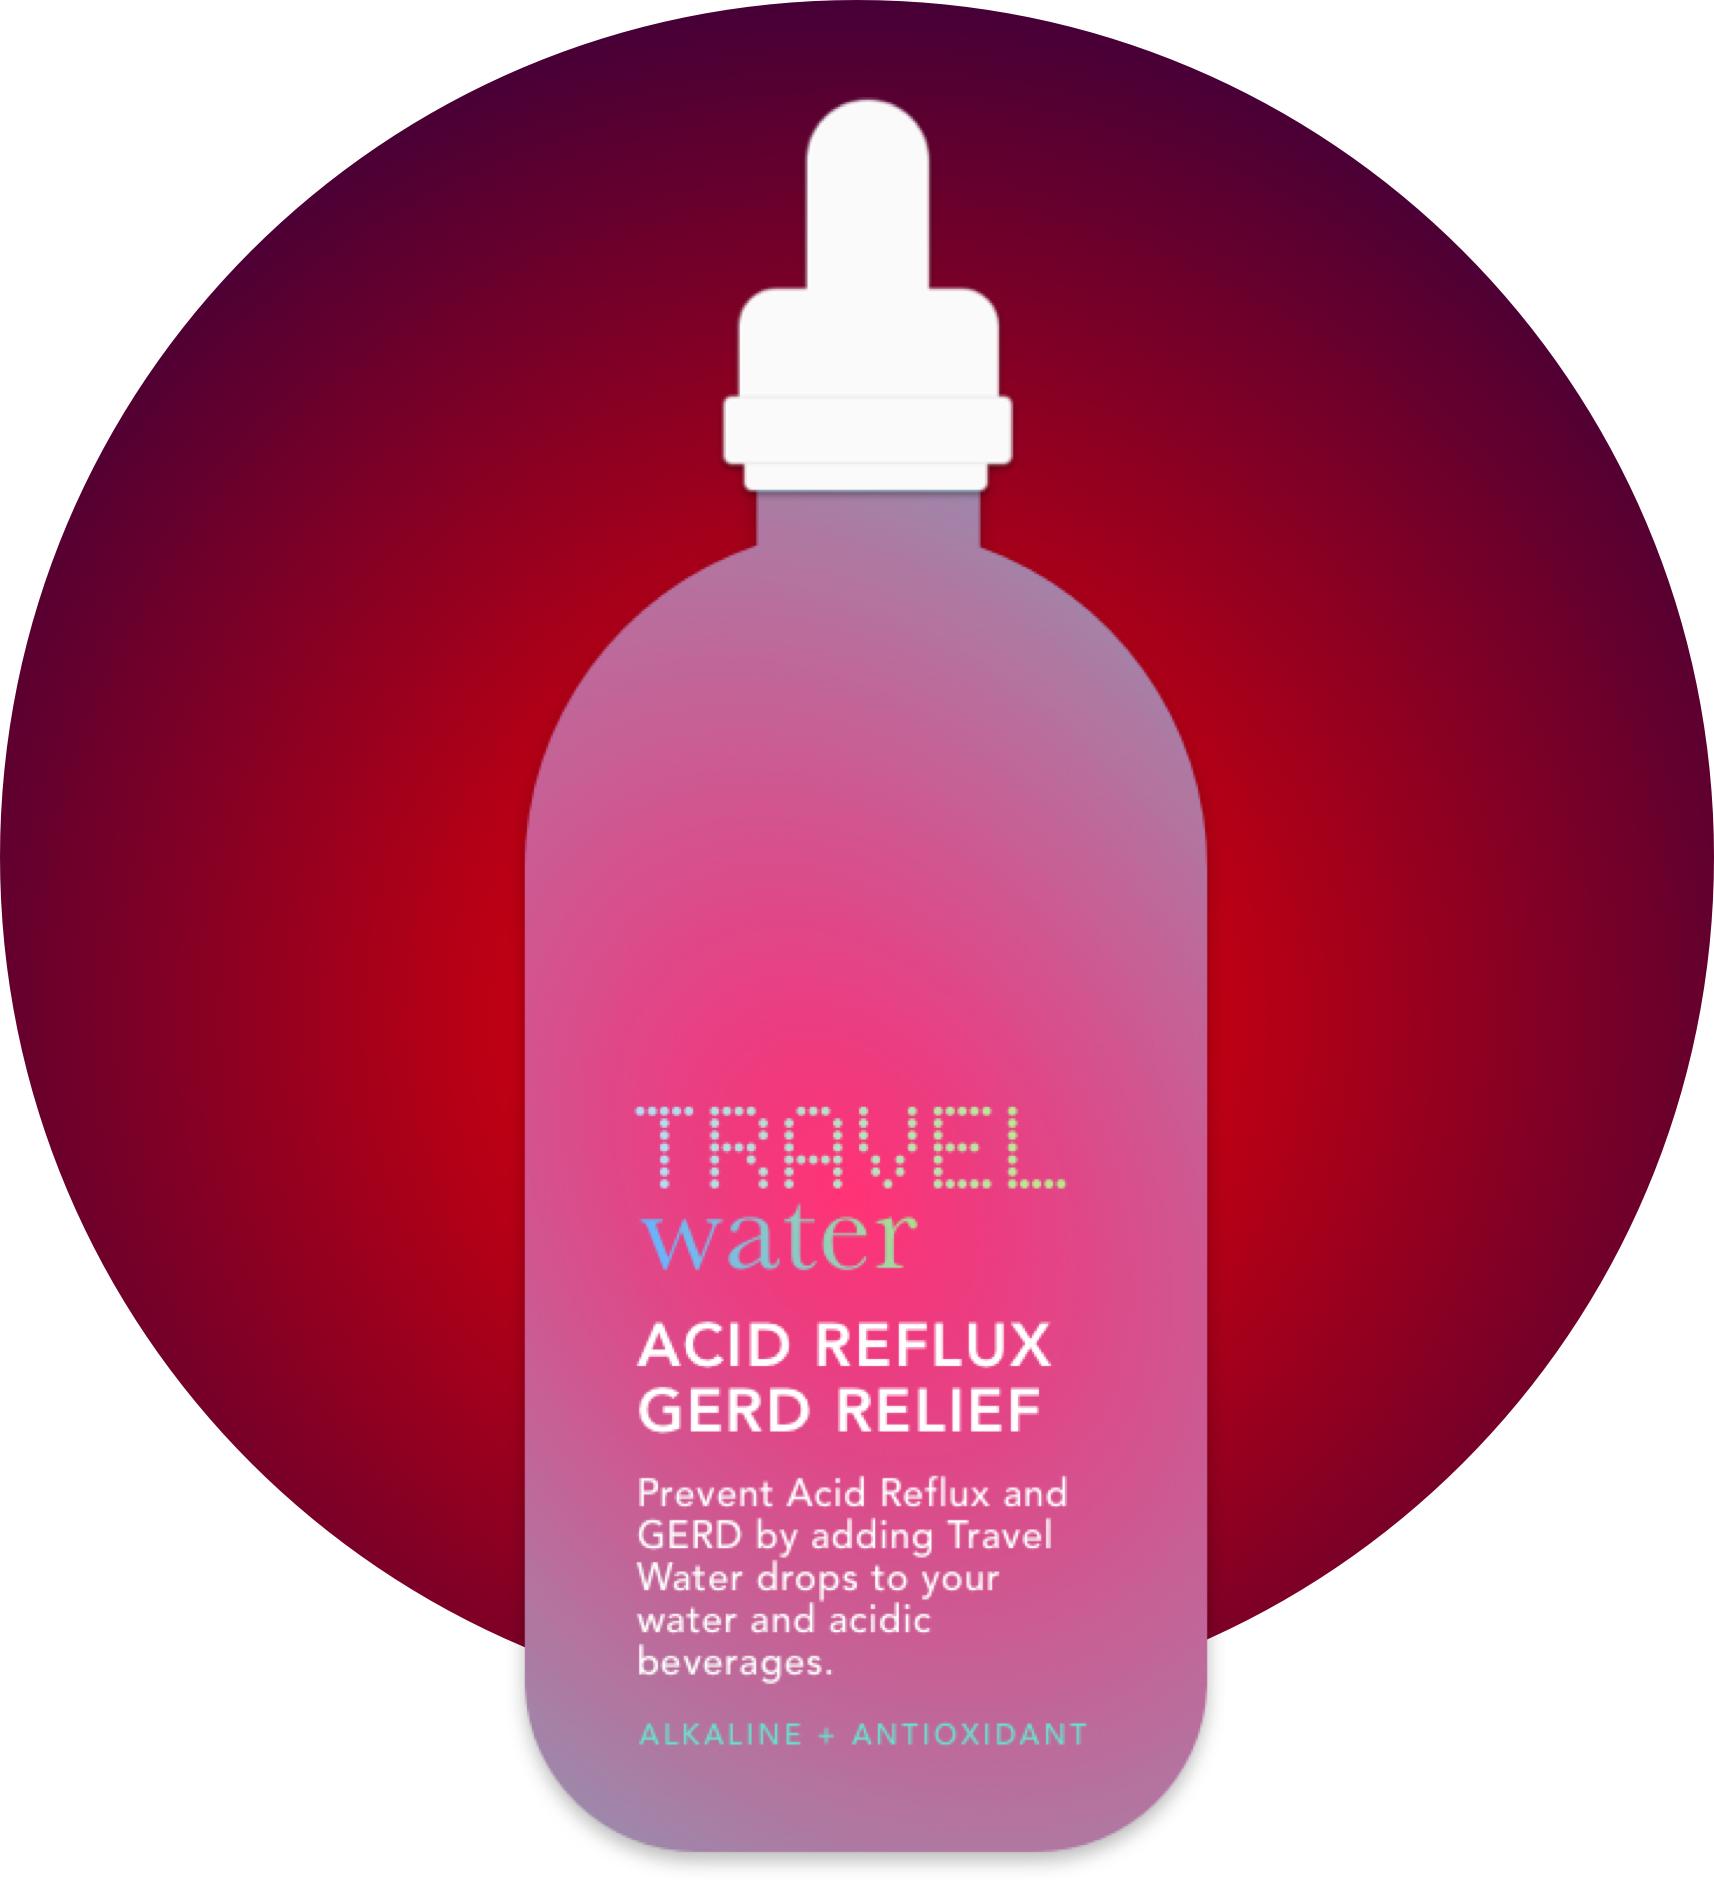 Travel-Acid-Reflux-Prevention-Water-Alkaline-Antioxidant-Water-Pure